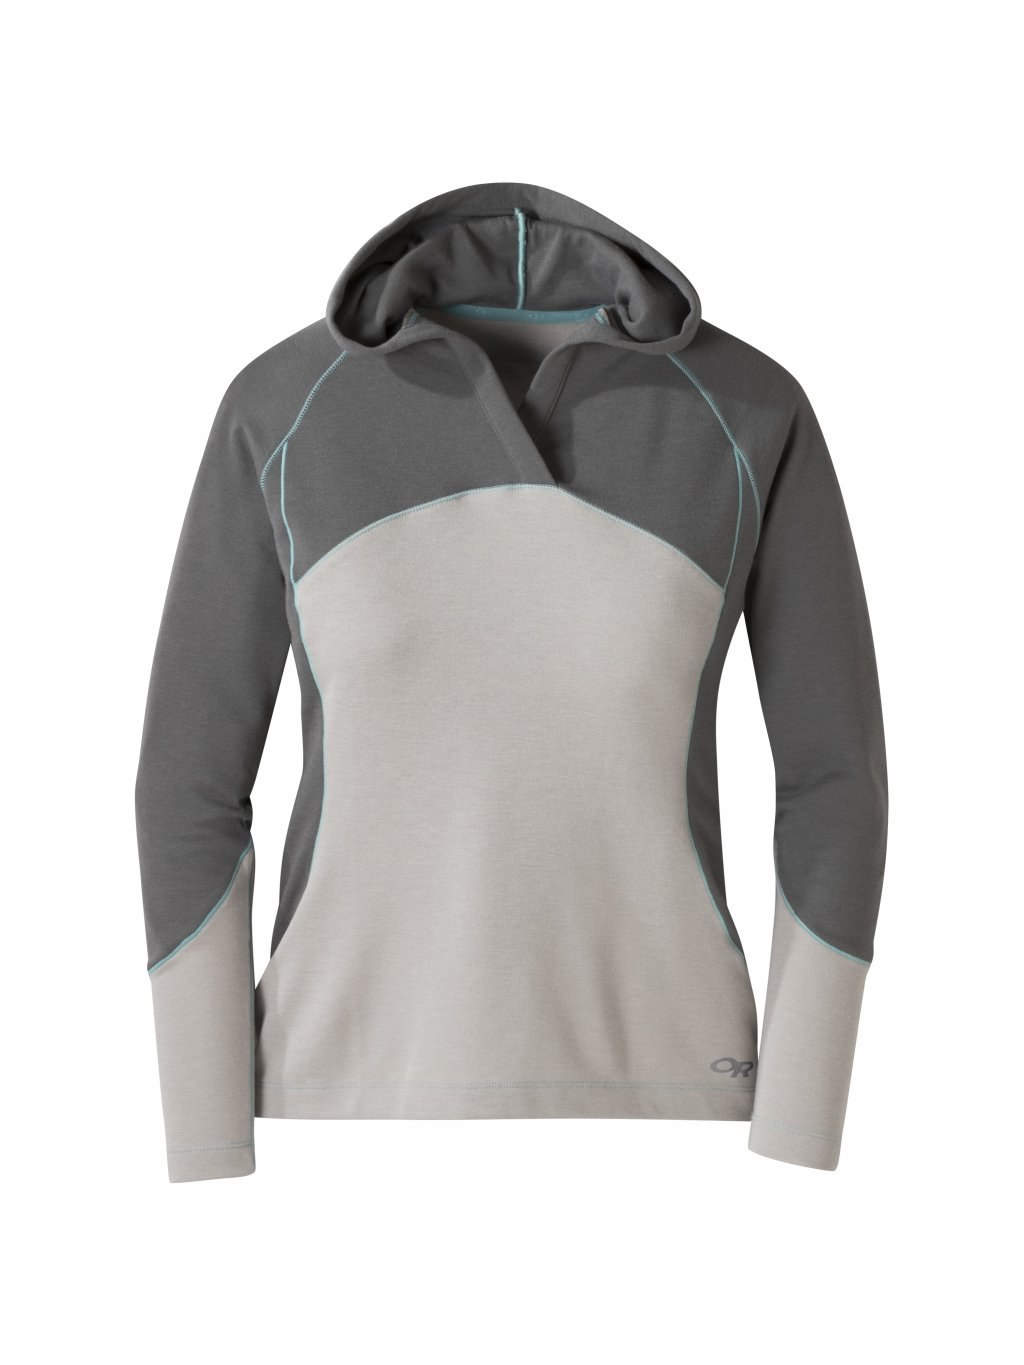 OUTDOOR RESEARCH Women's Blackridge Hoody, slate/pewter